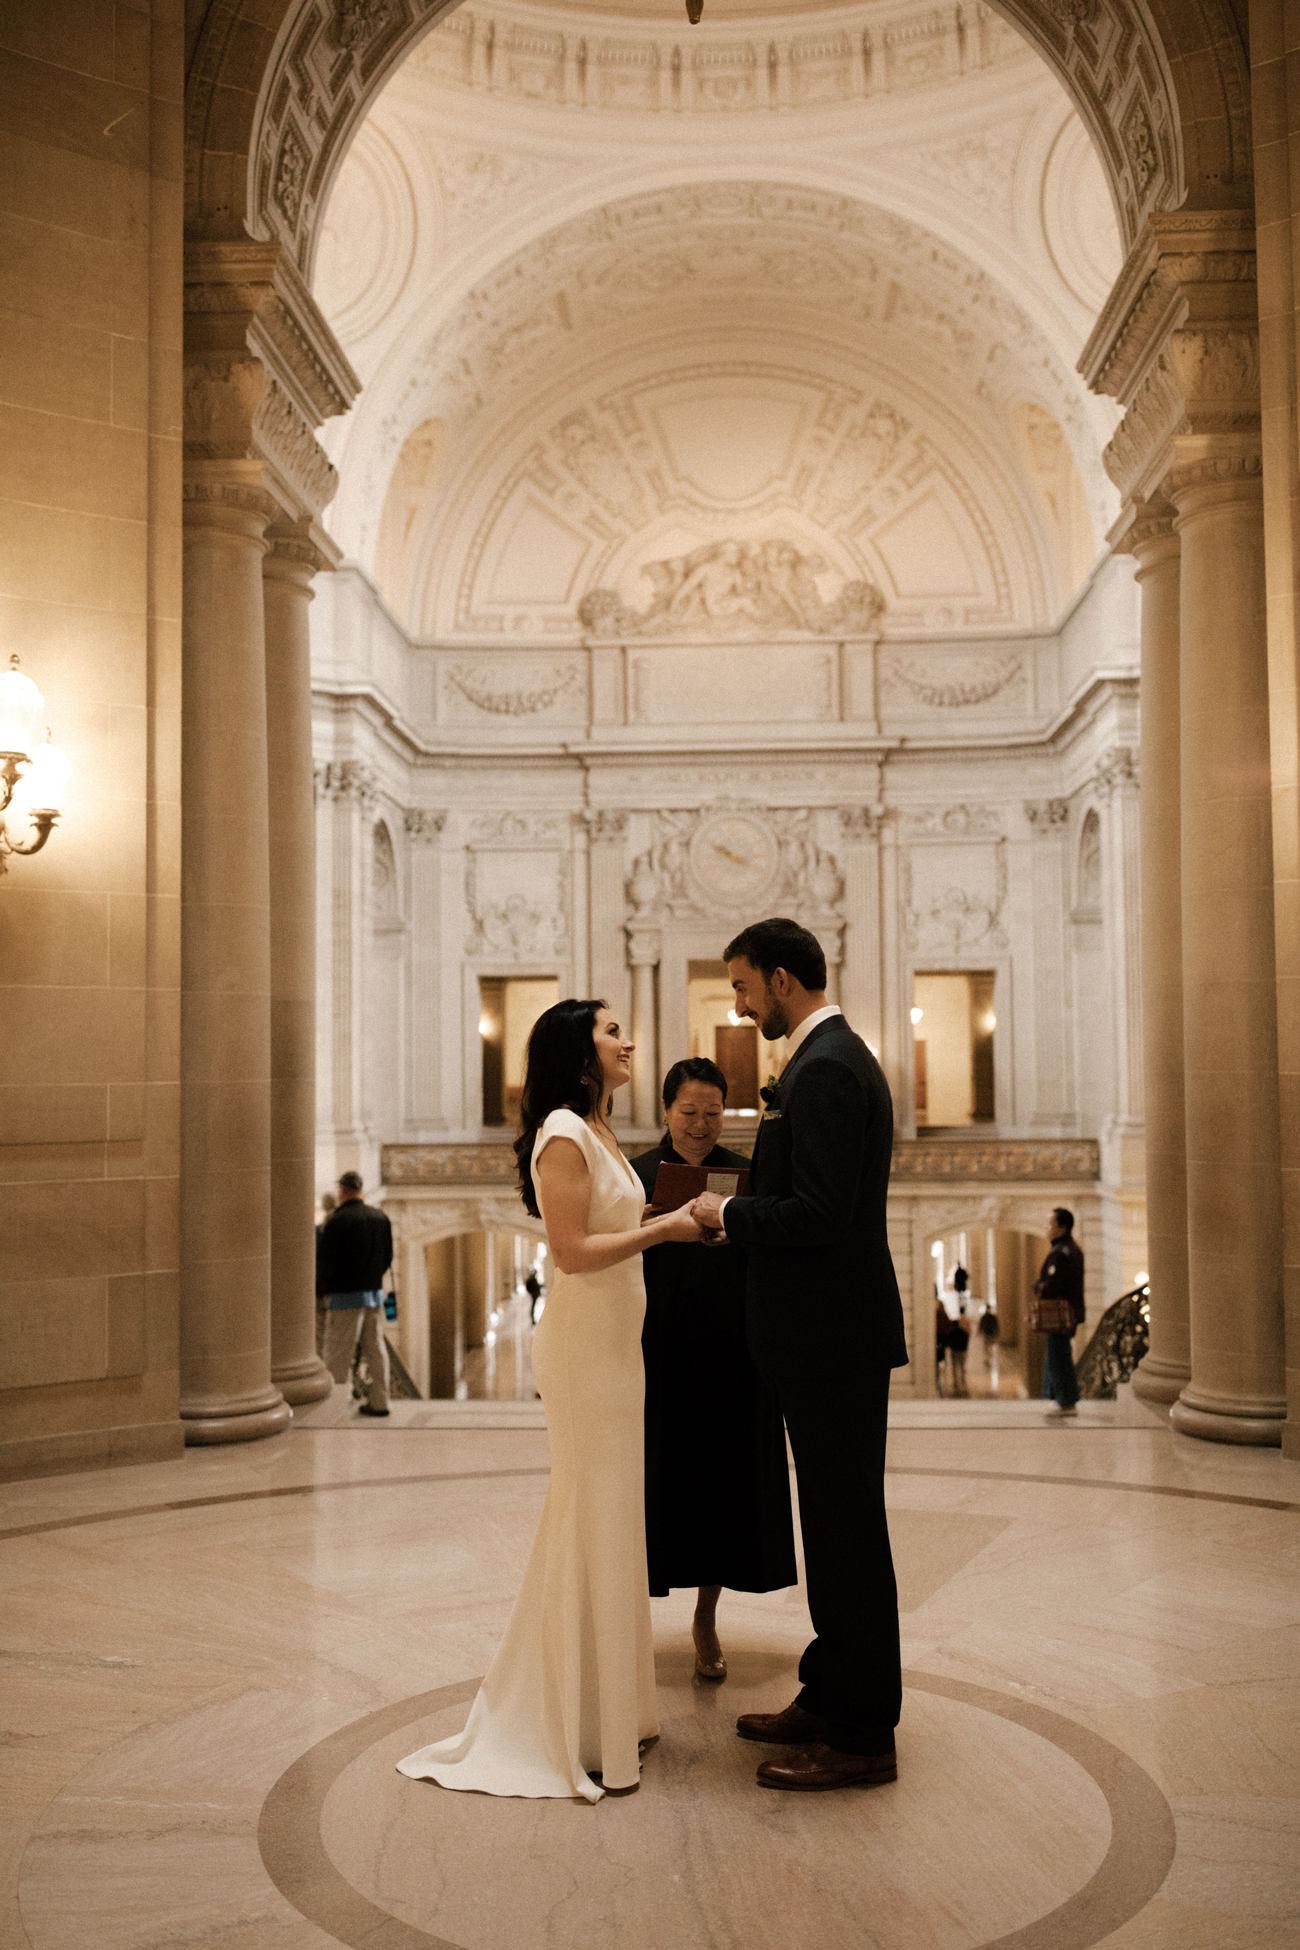 bride and groom standing in marble entryway at city hall